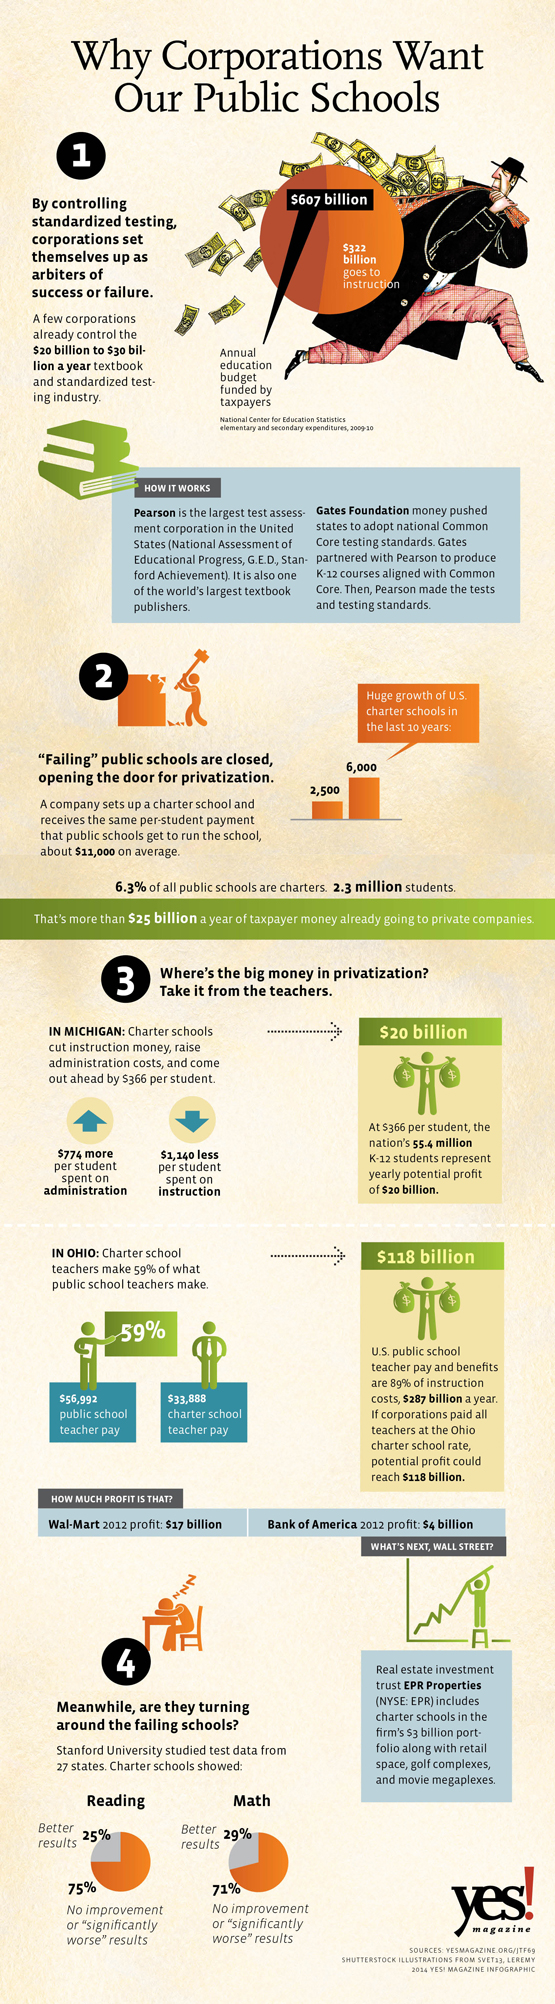 education infographic yes magazine